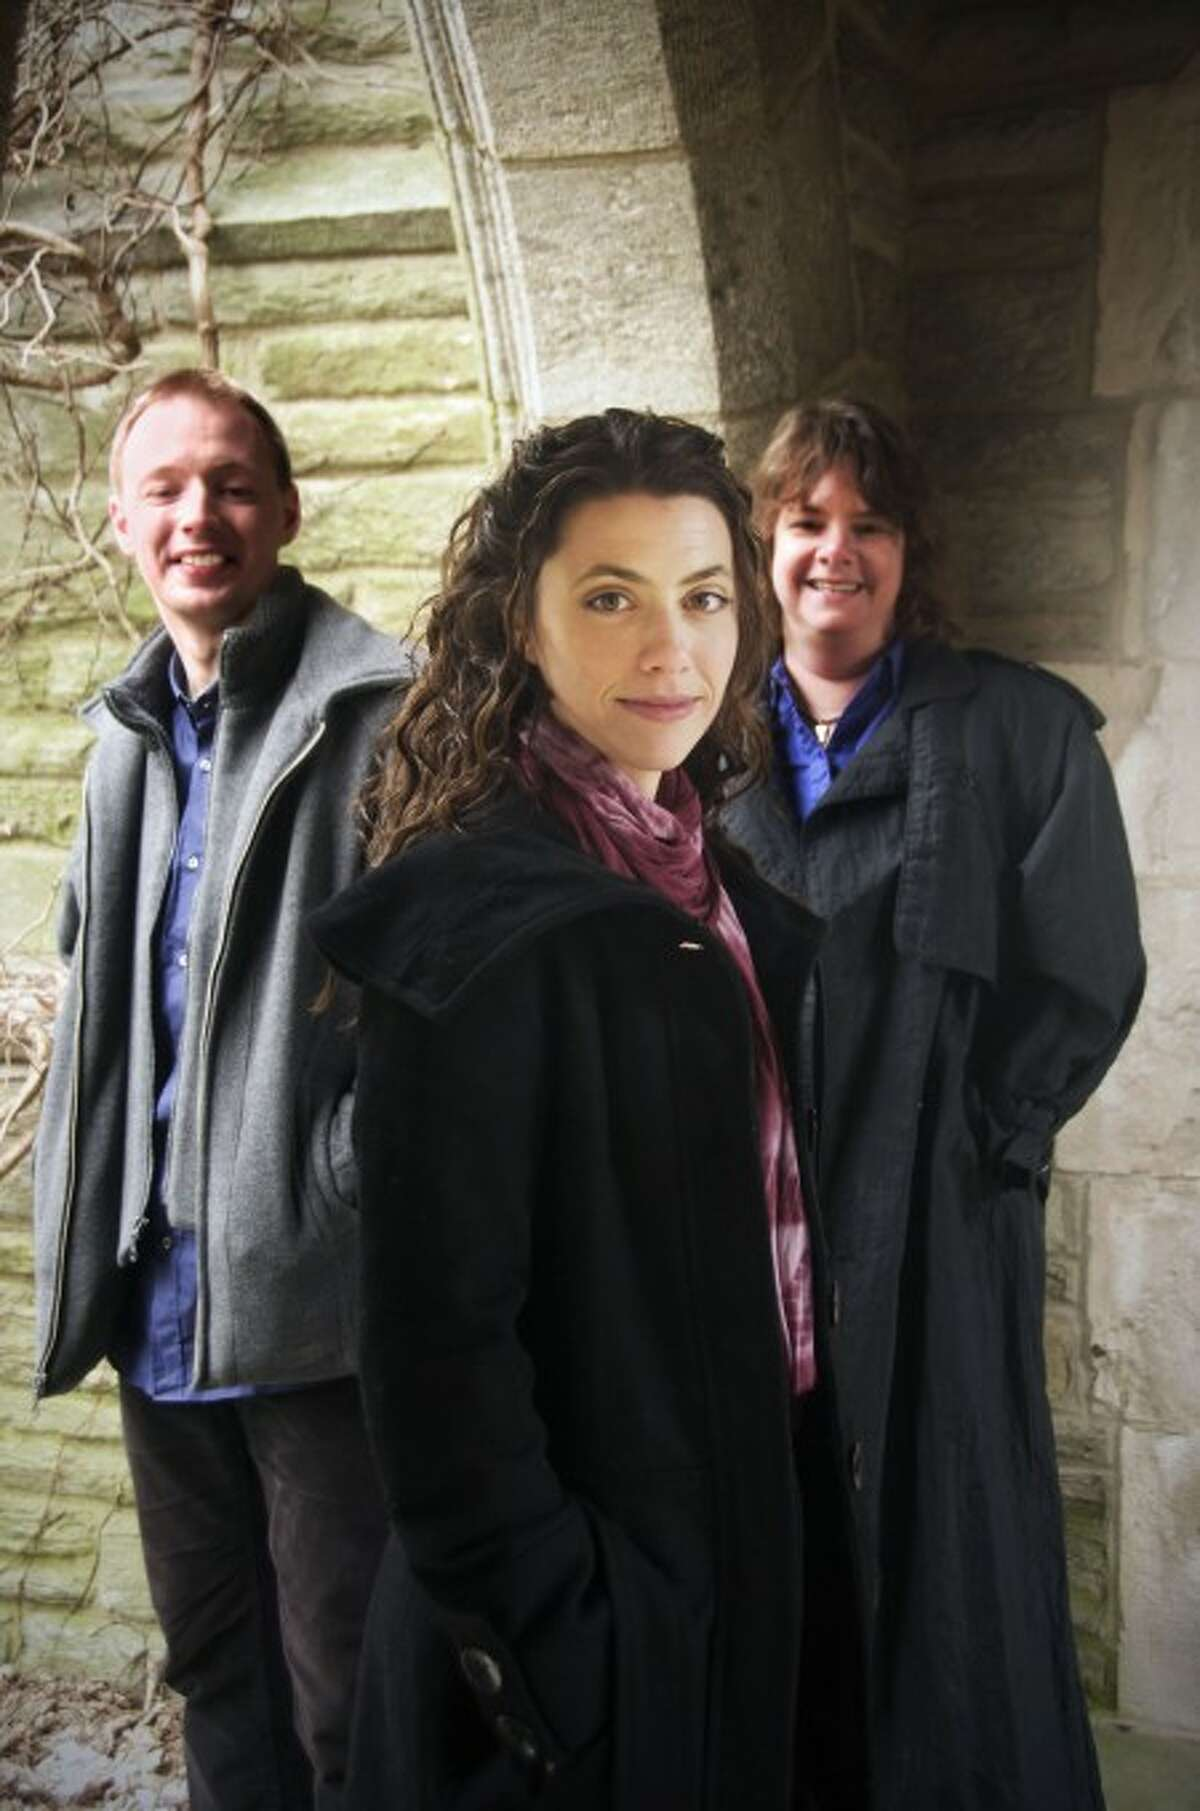 'Concert happenings' in Ridgefield offers free sounds